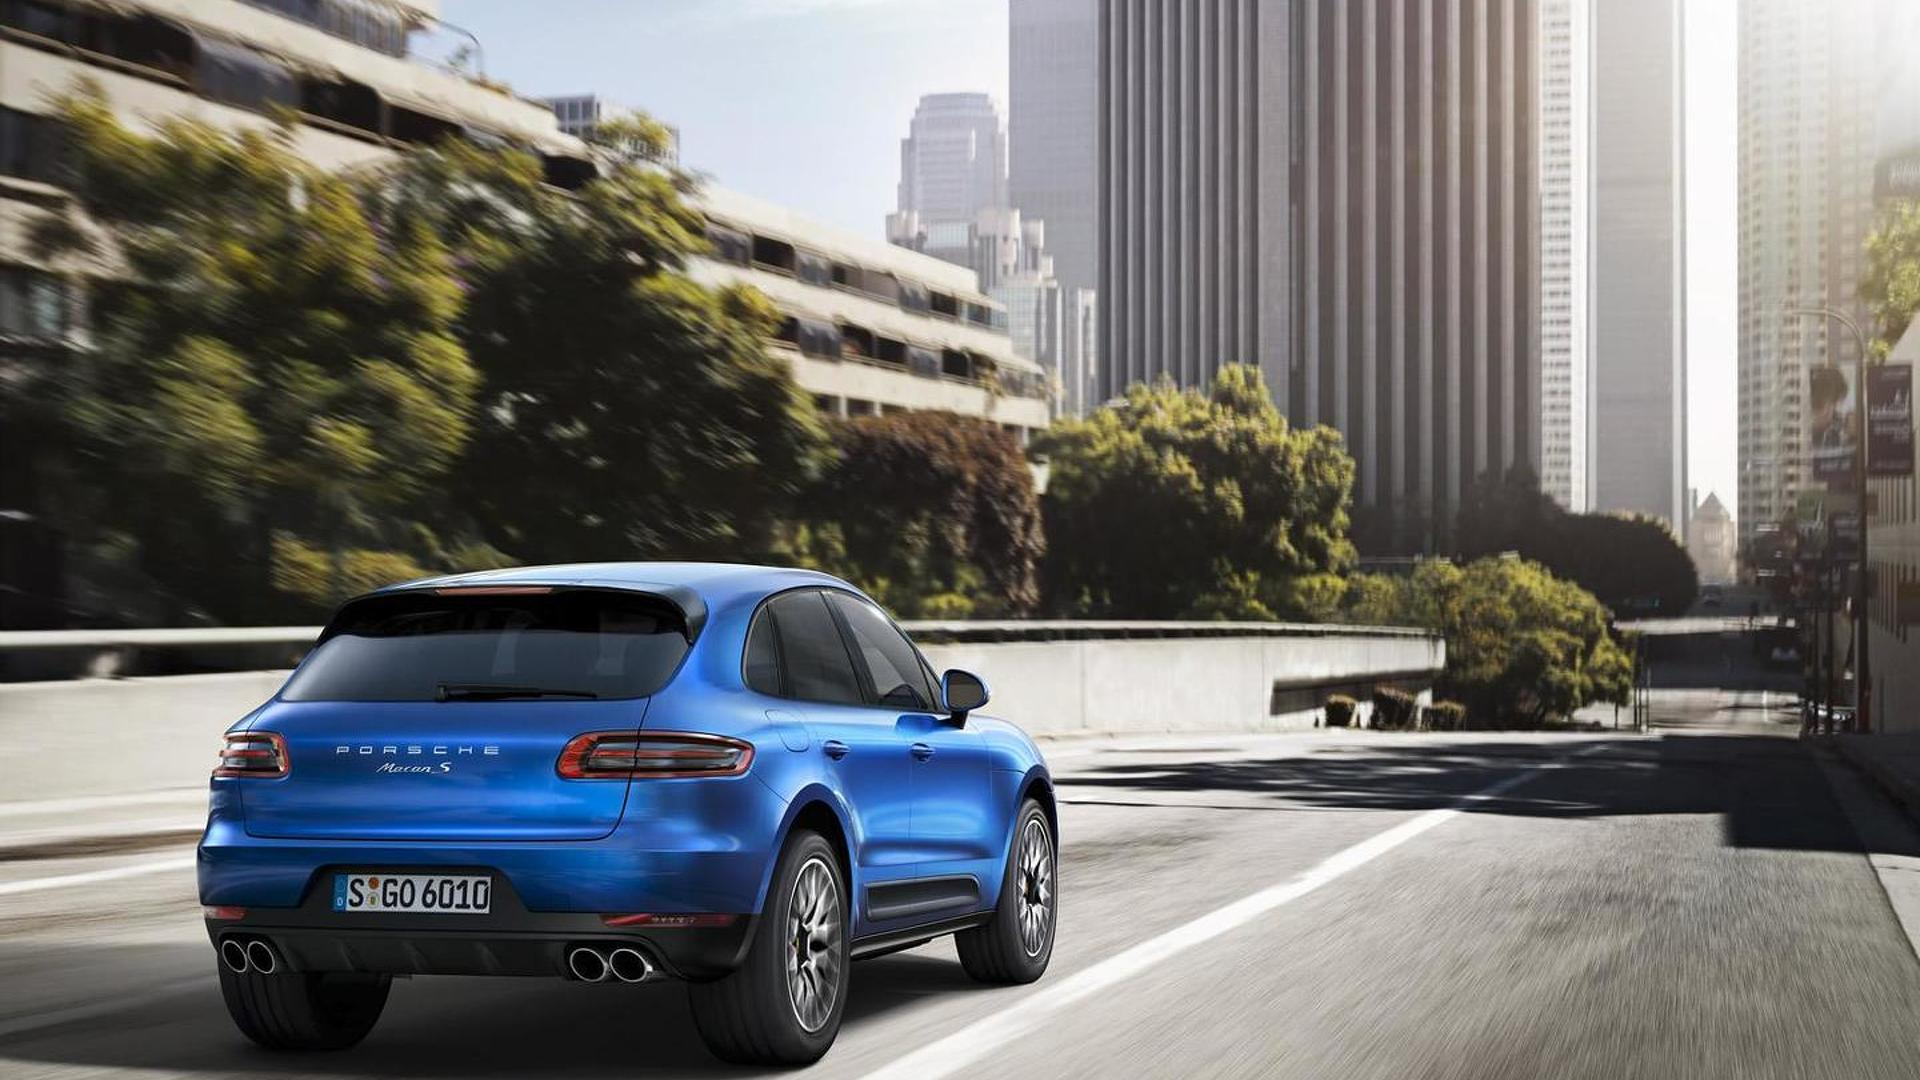 2014 Porsche Macan compact SUV launched at Los Angeles Auto Show